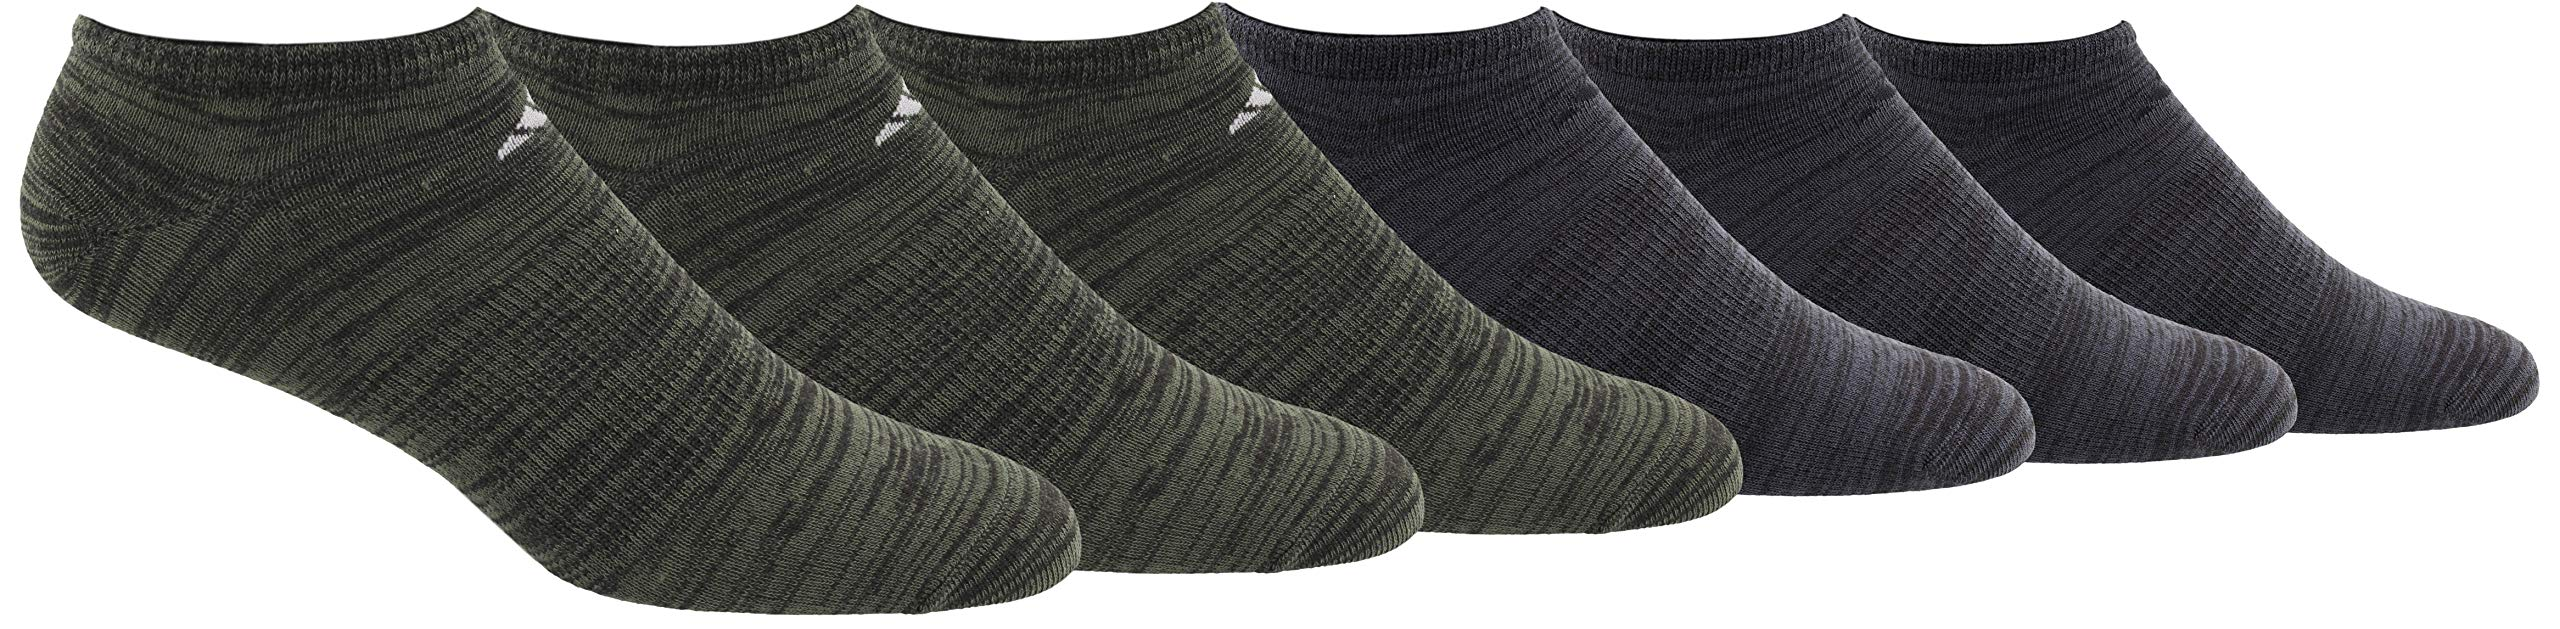 adidas Men's Superlite Low Cut Socks with arch compression (6-Pair),Base Green  -  Black Space Dye/ Light Onix Black - Nigh,Large, (Shoe Size 6-12) by adidas